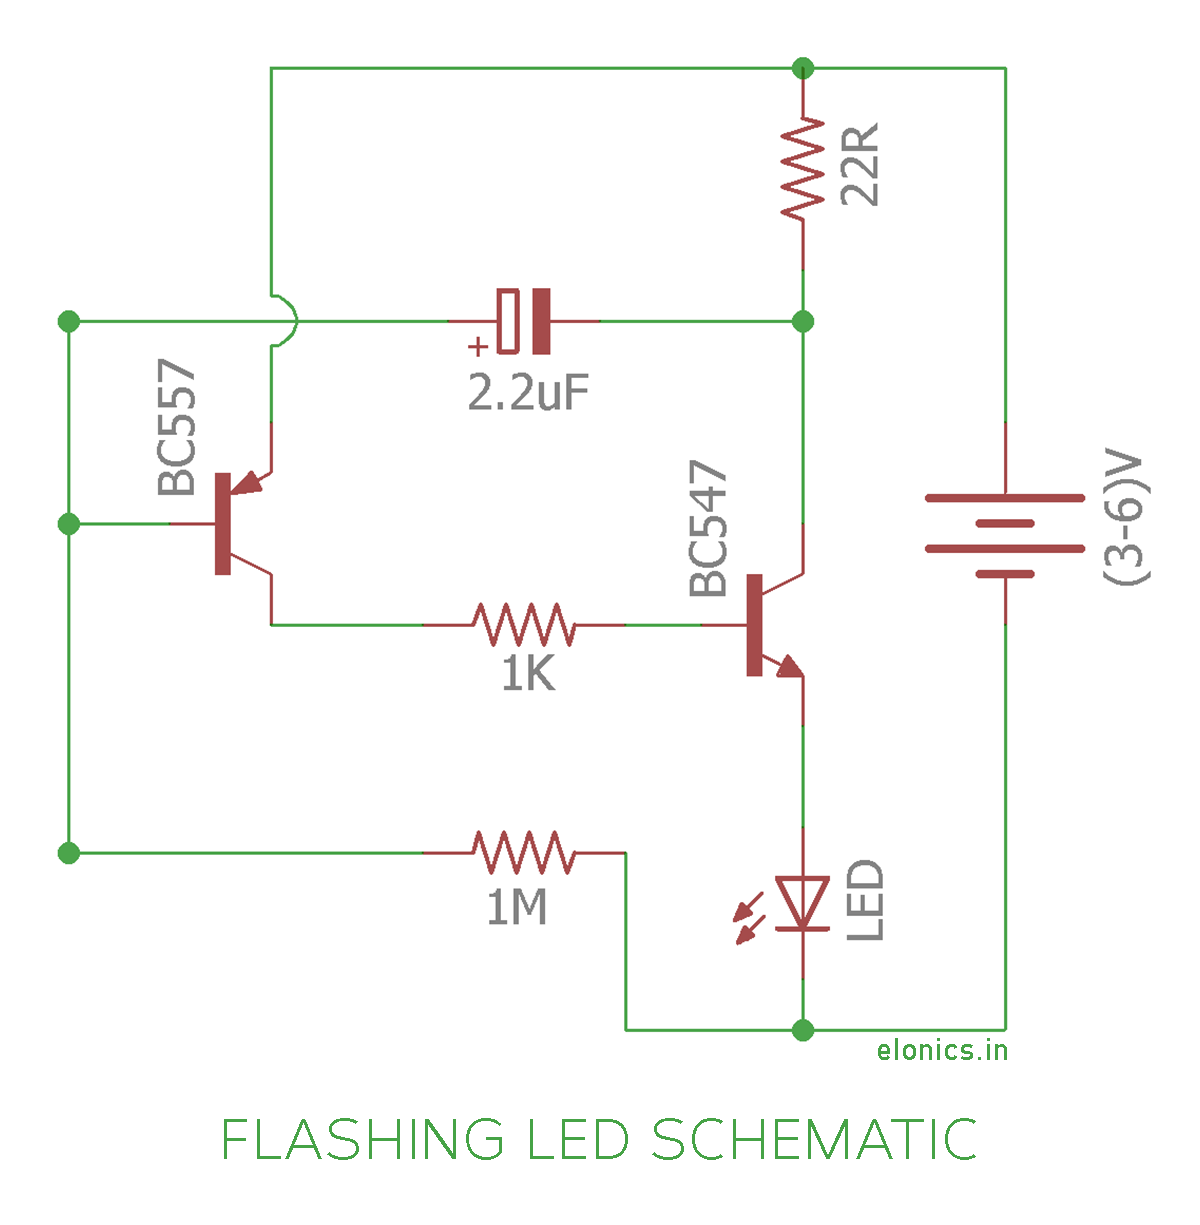 Flashing Blinking Led Circuit Using Transistors Schematic 200m Fm Transmitter Electronic Circuits And Diagramelectronics